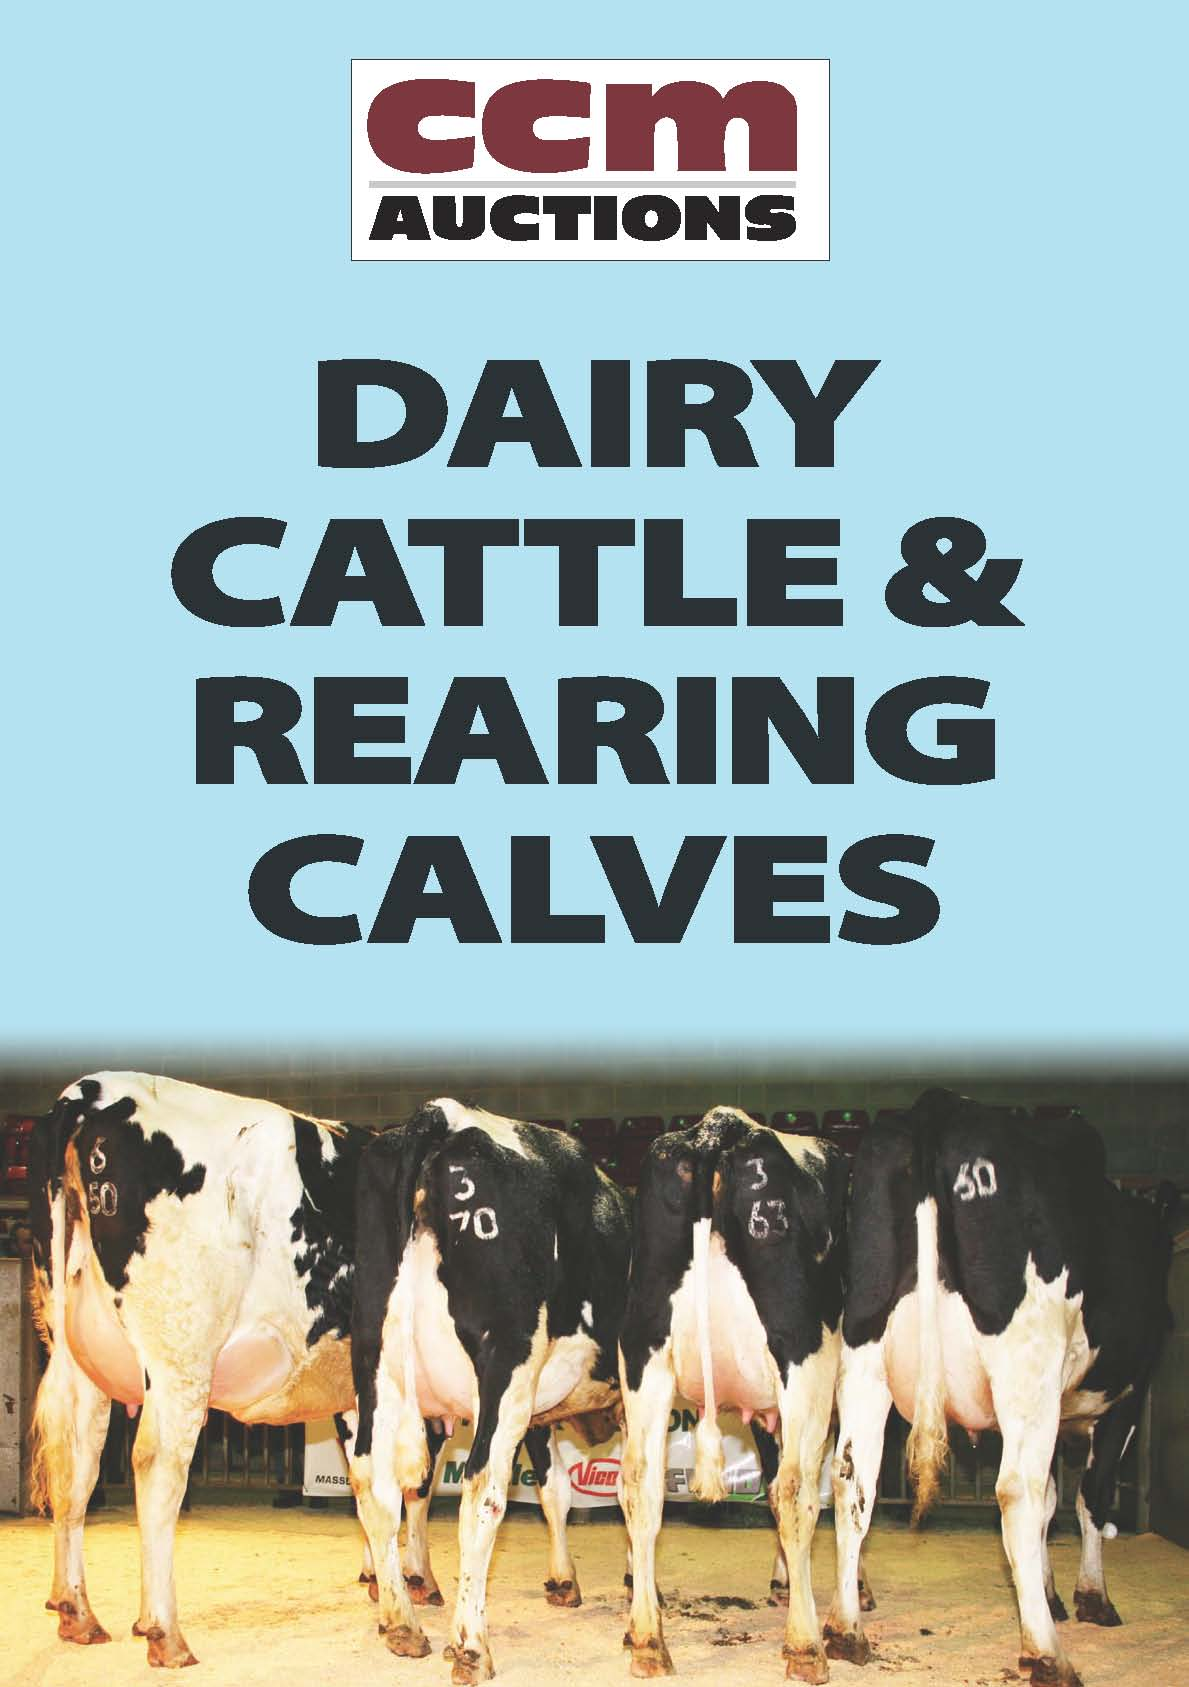 DAIRY & CALVES - MONDAY 6TH JUNE 2016